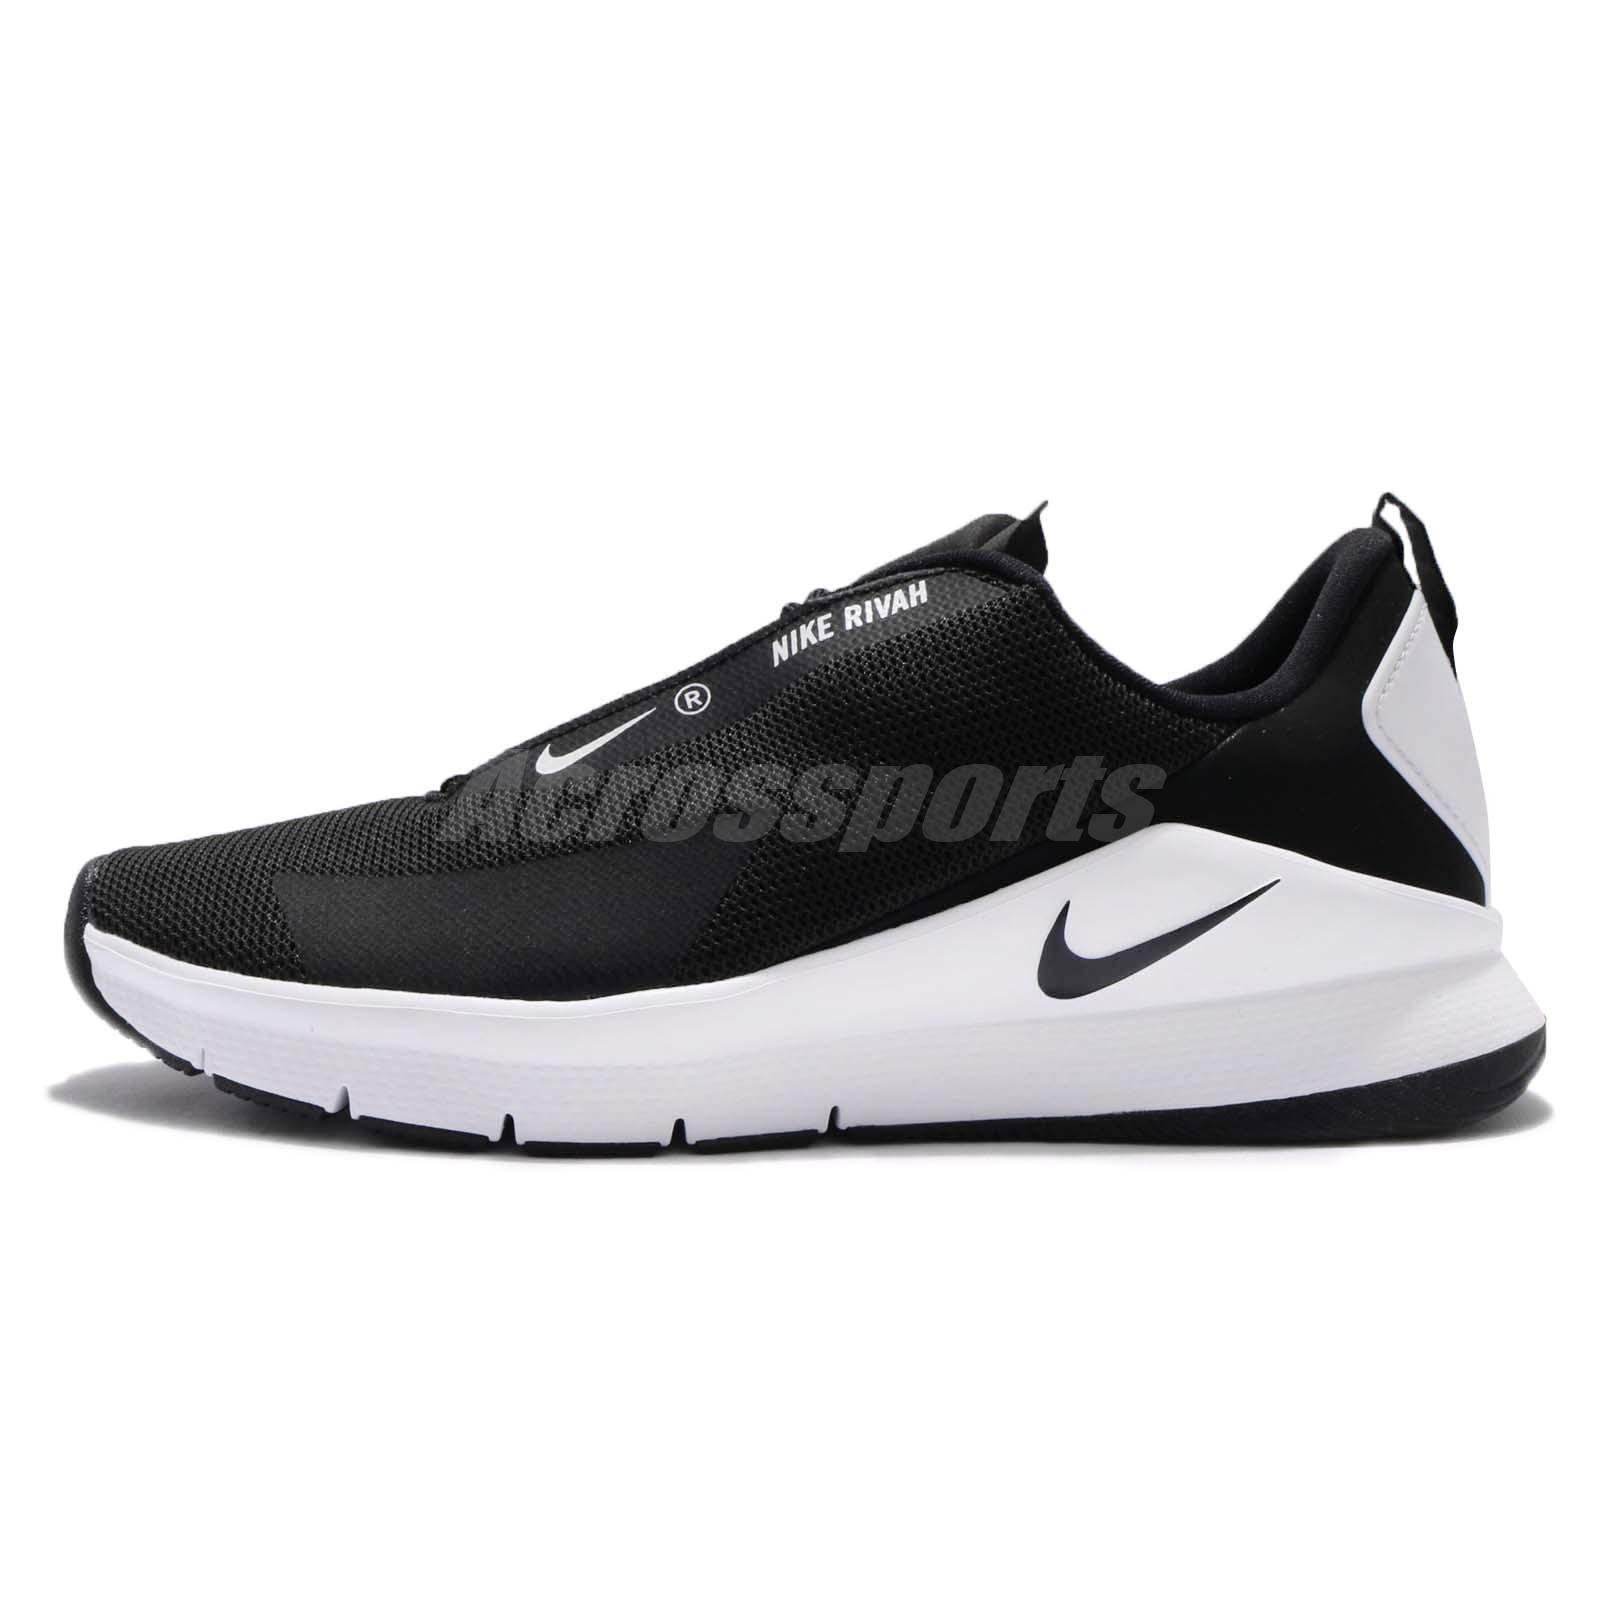 Wmns Nike Rivah Black White Women Running Shoes Sneakers Trainers AH6774-004